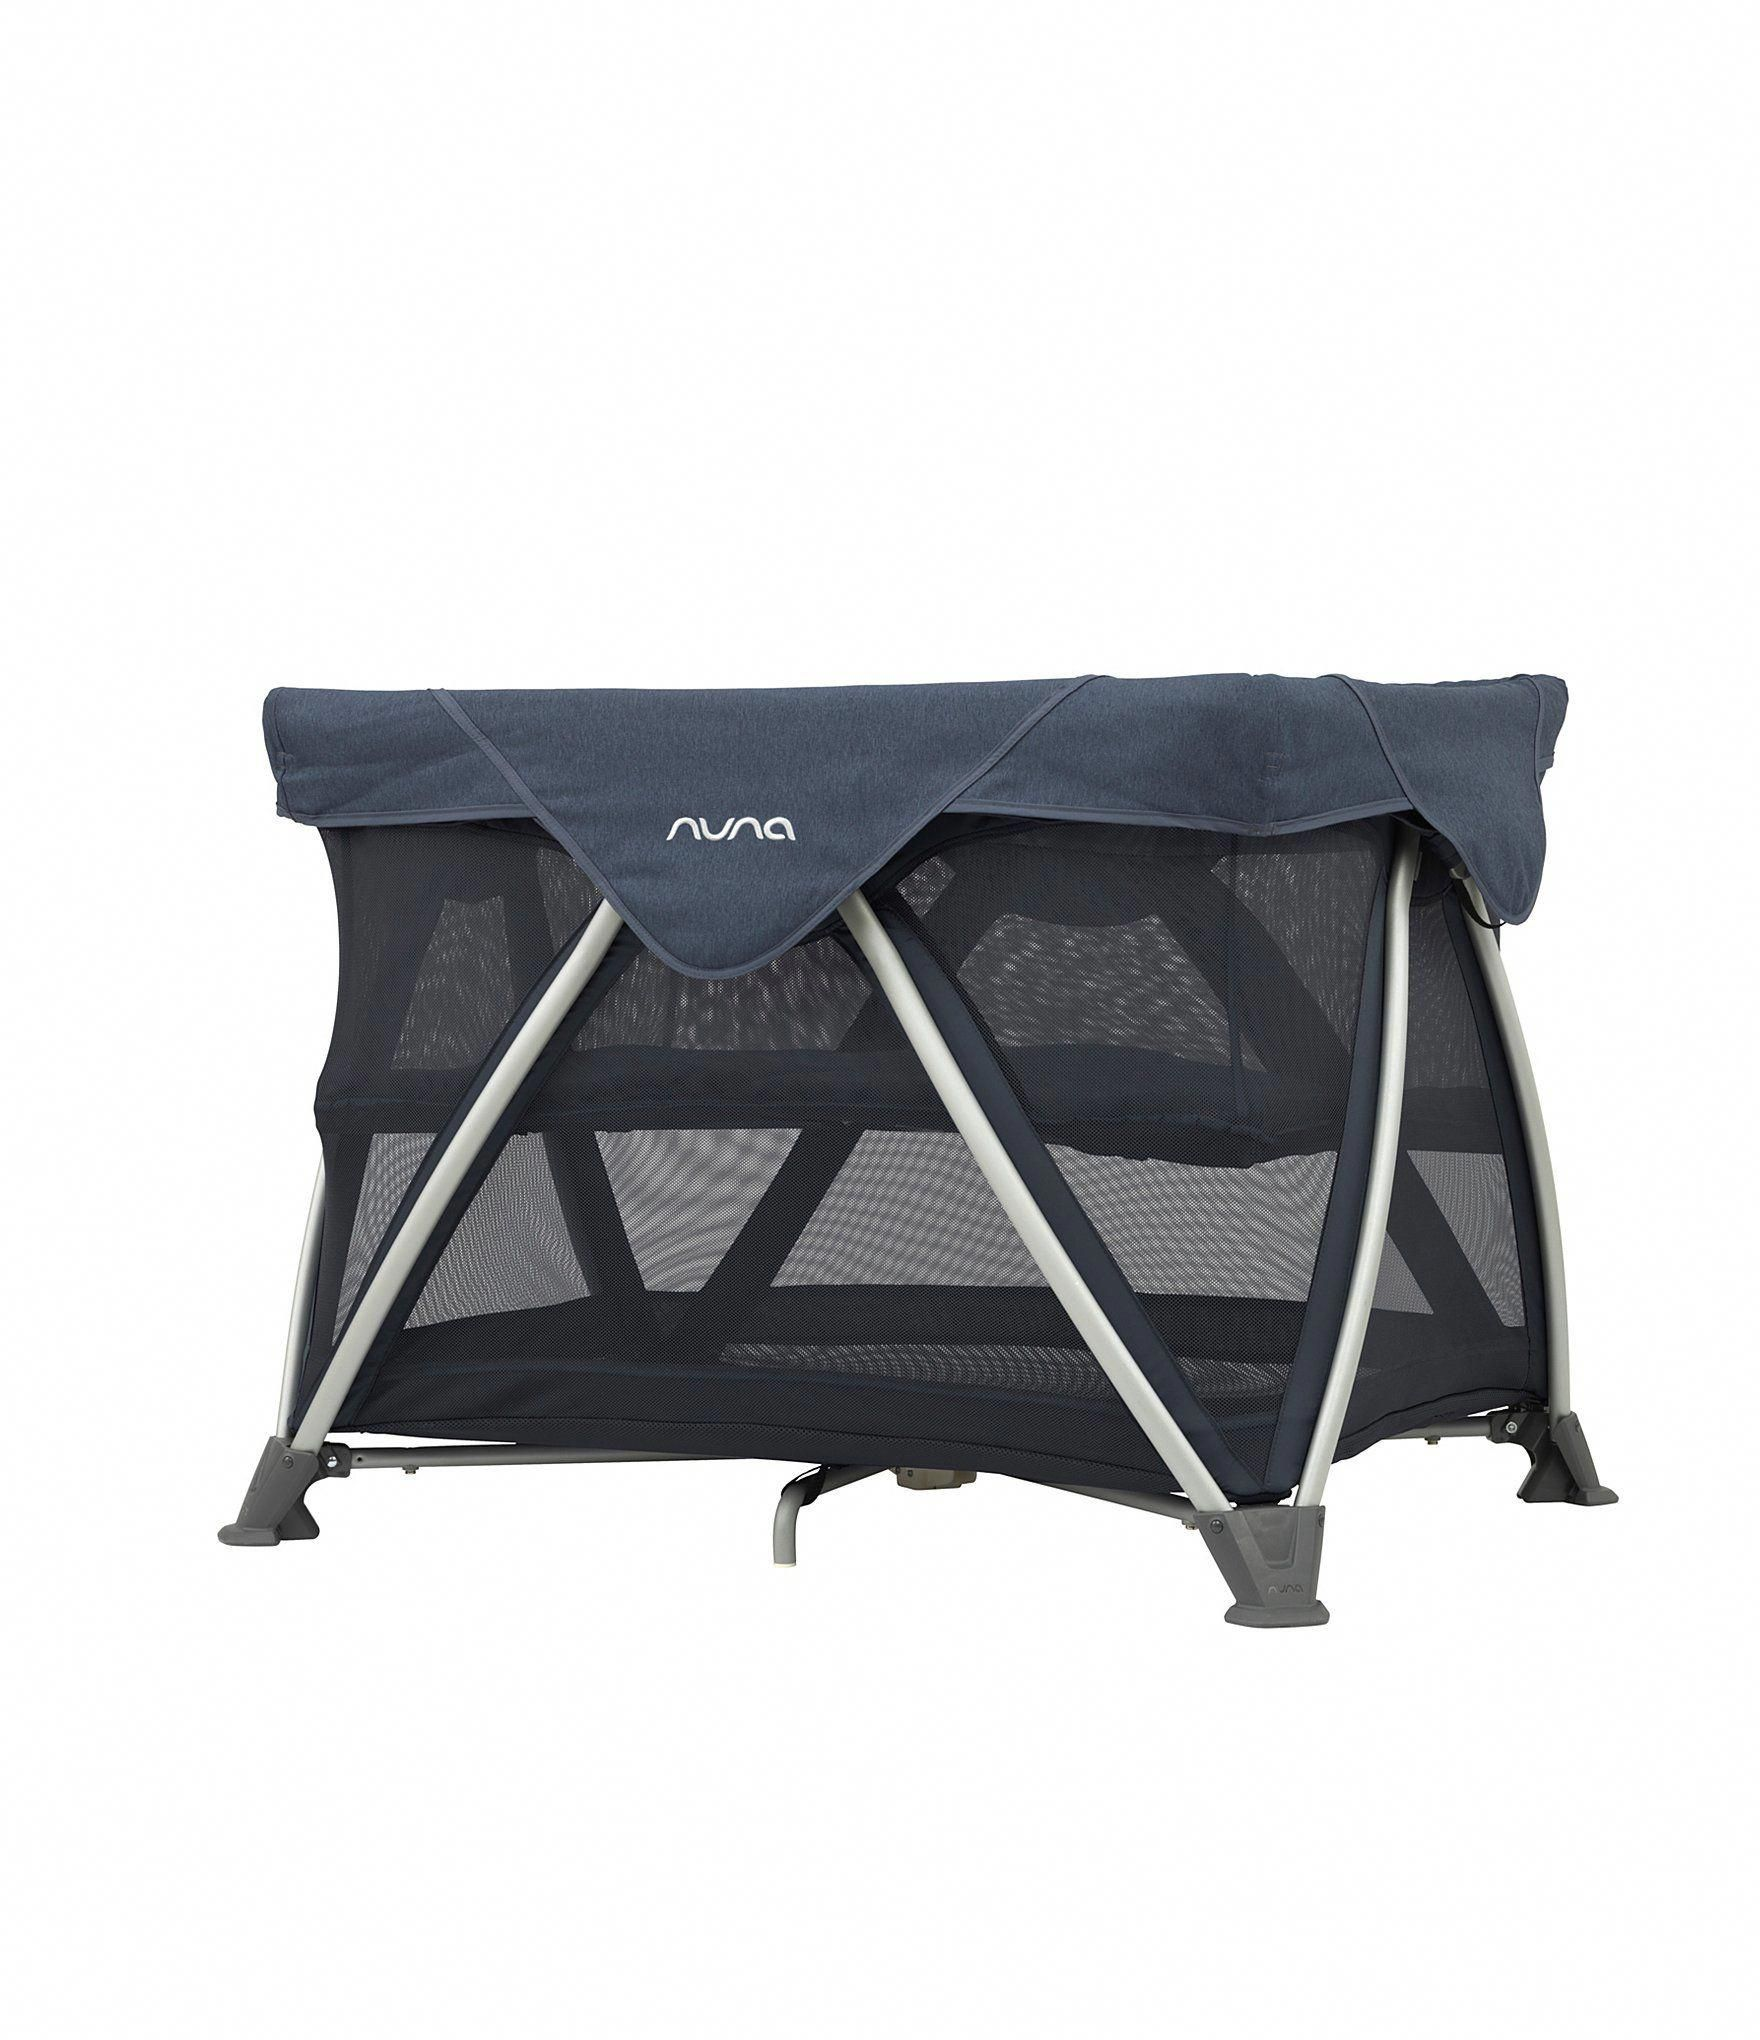 Nuna Sena Aire Travel Crib Aspen N/A TravelFashion